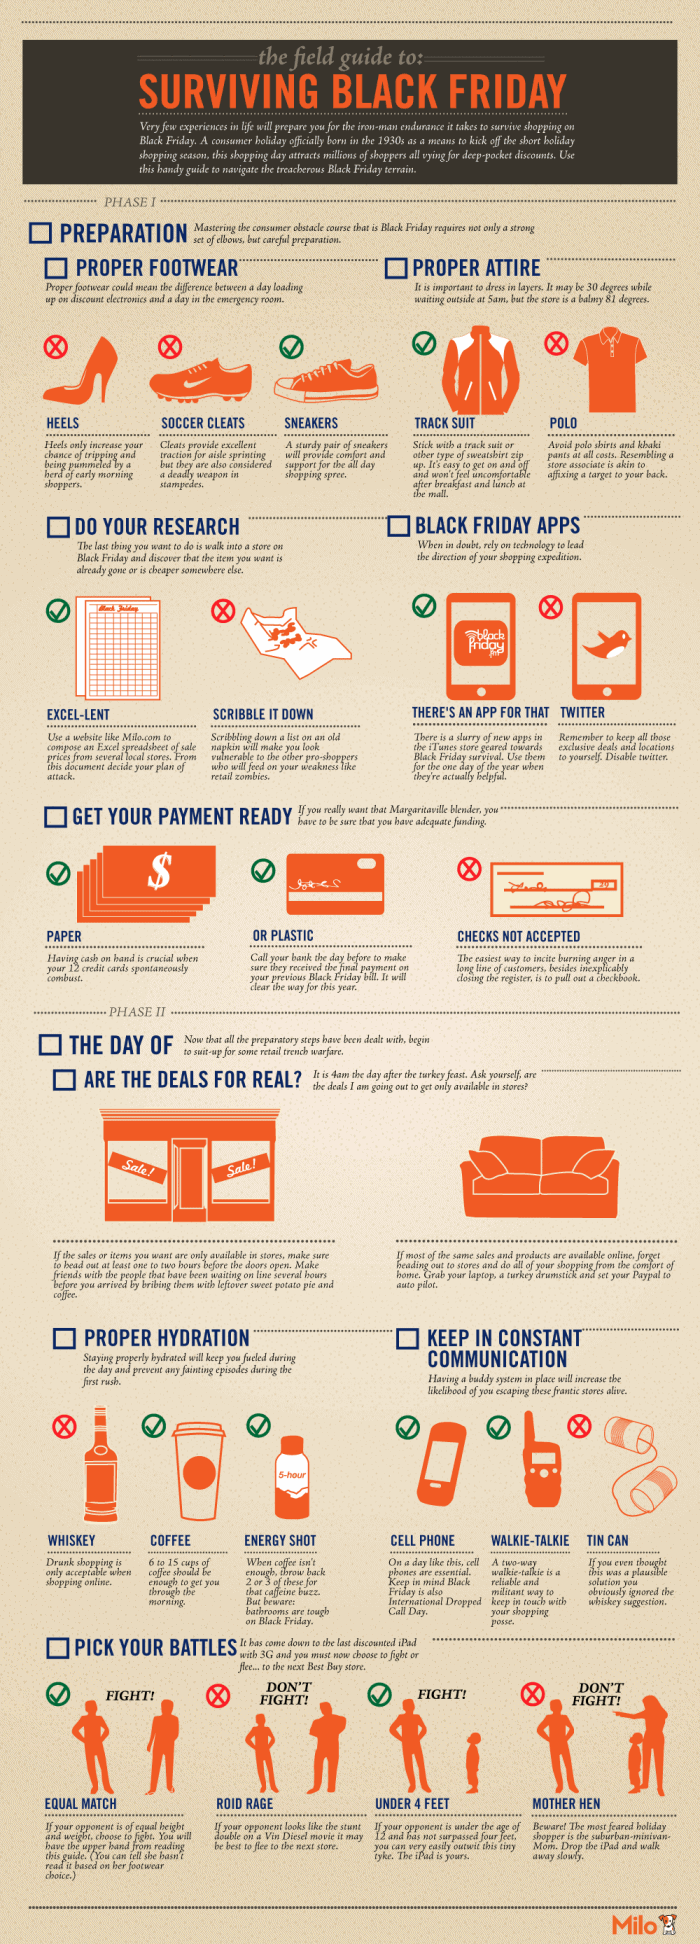 Field Guide To Surviving Black Friday